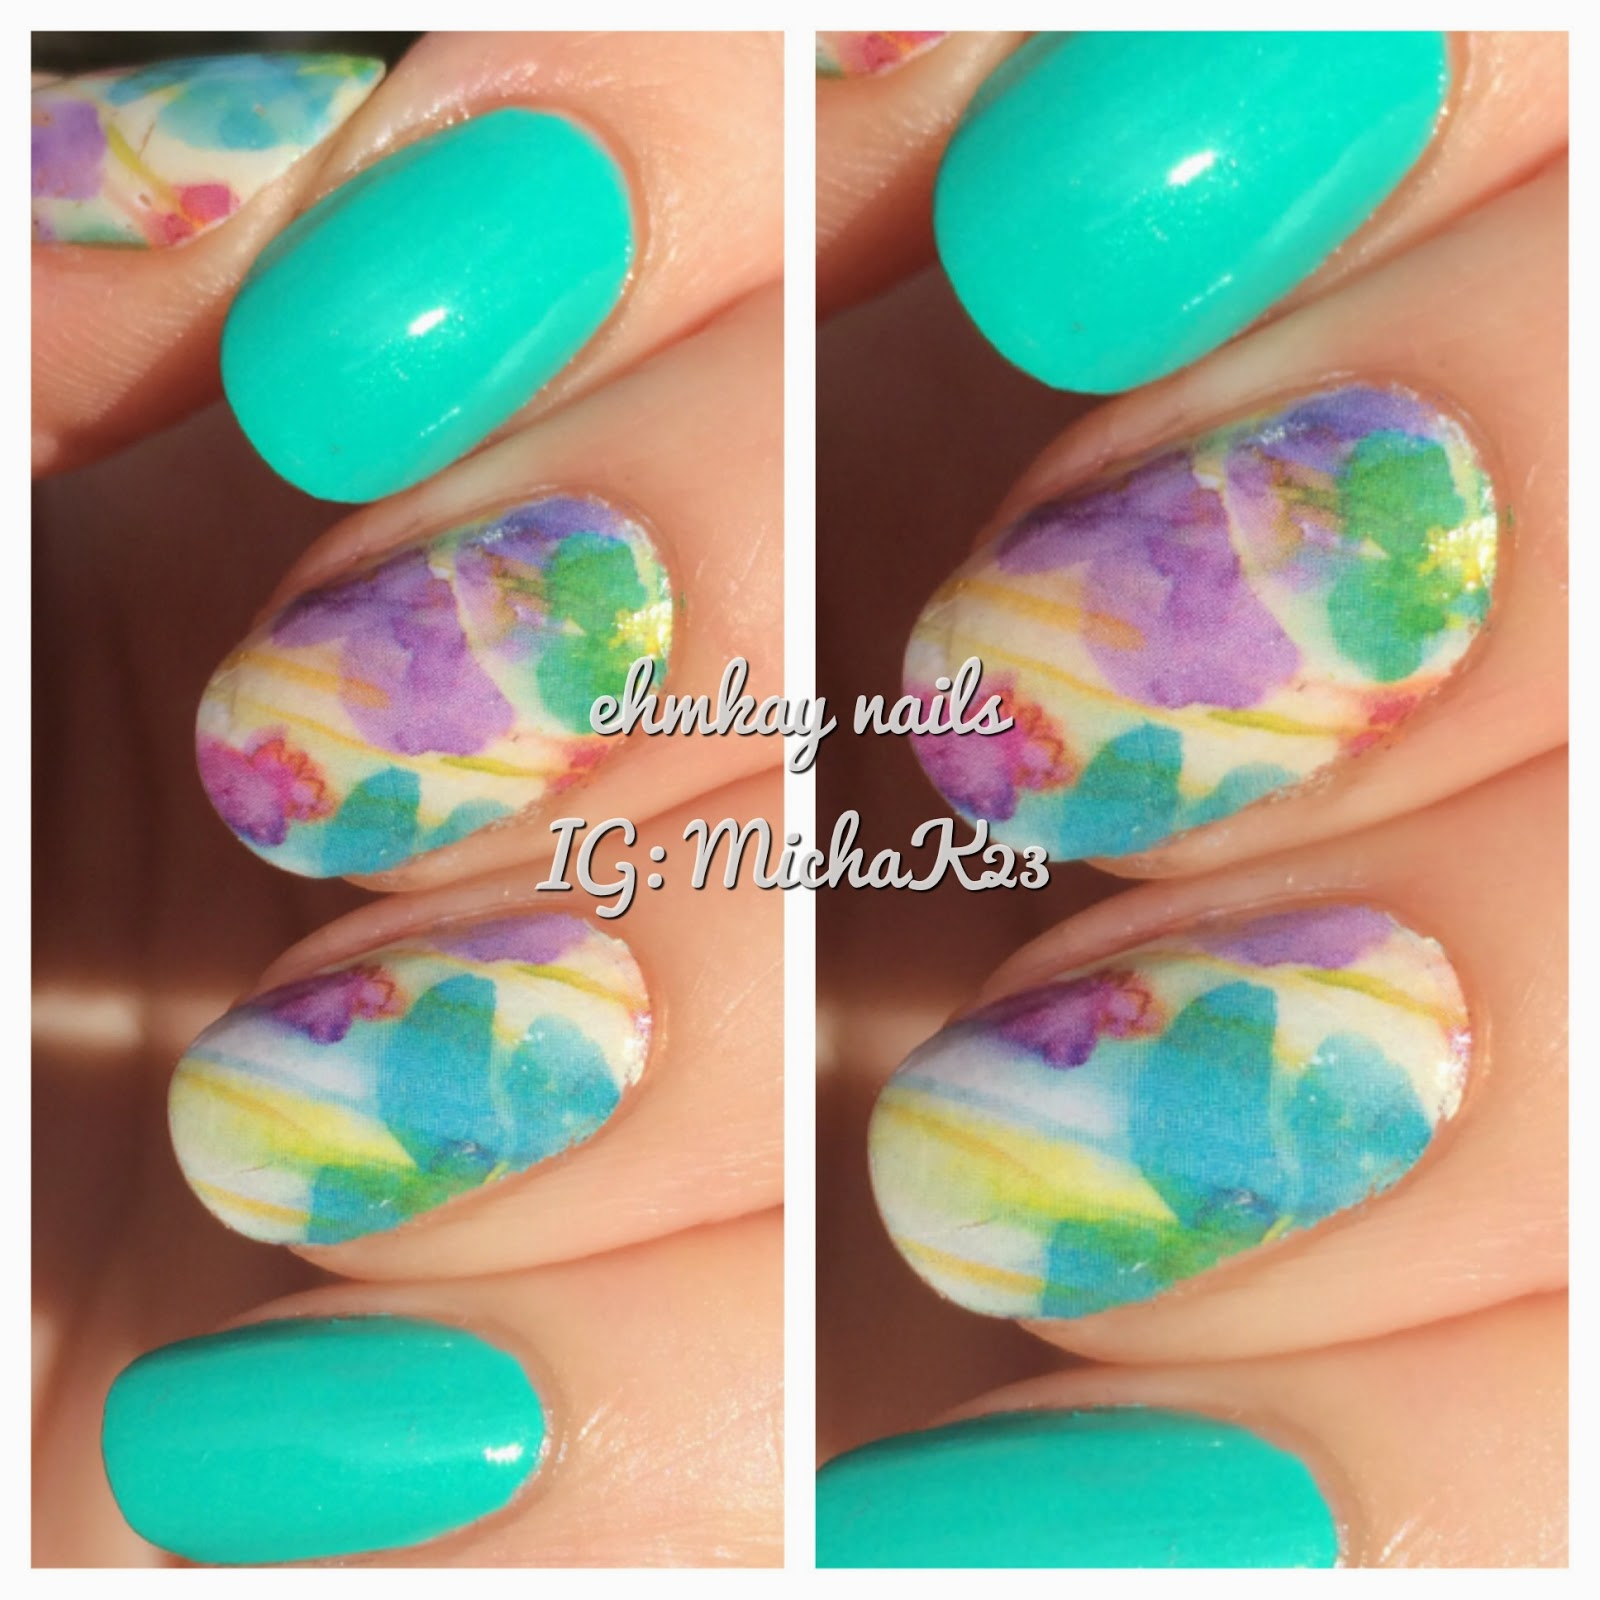 Ehmkay nails born pretty full nail water decals instant nail art prinsesfo Gallery